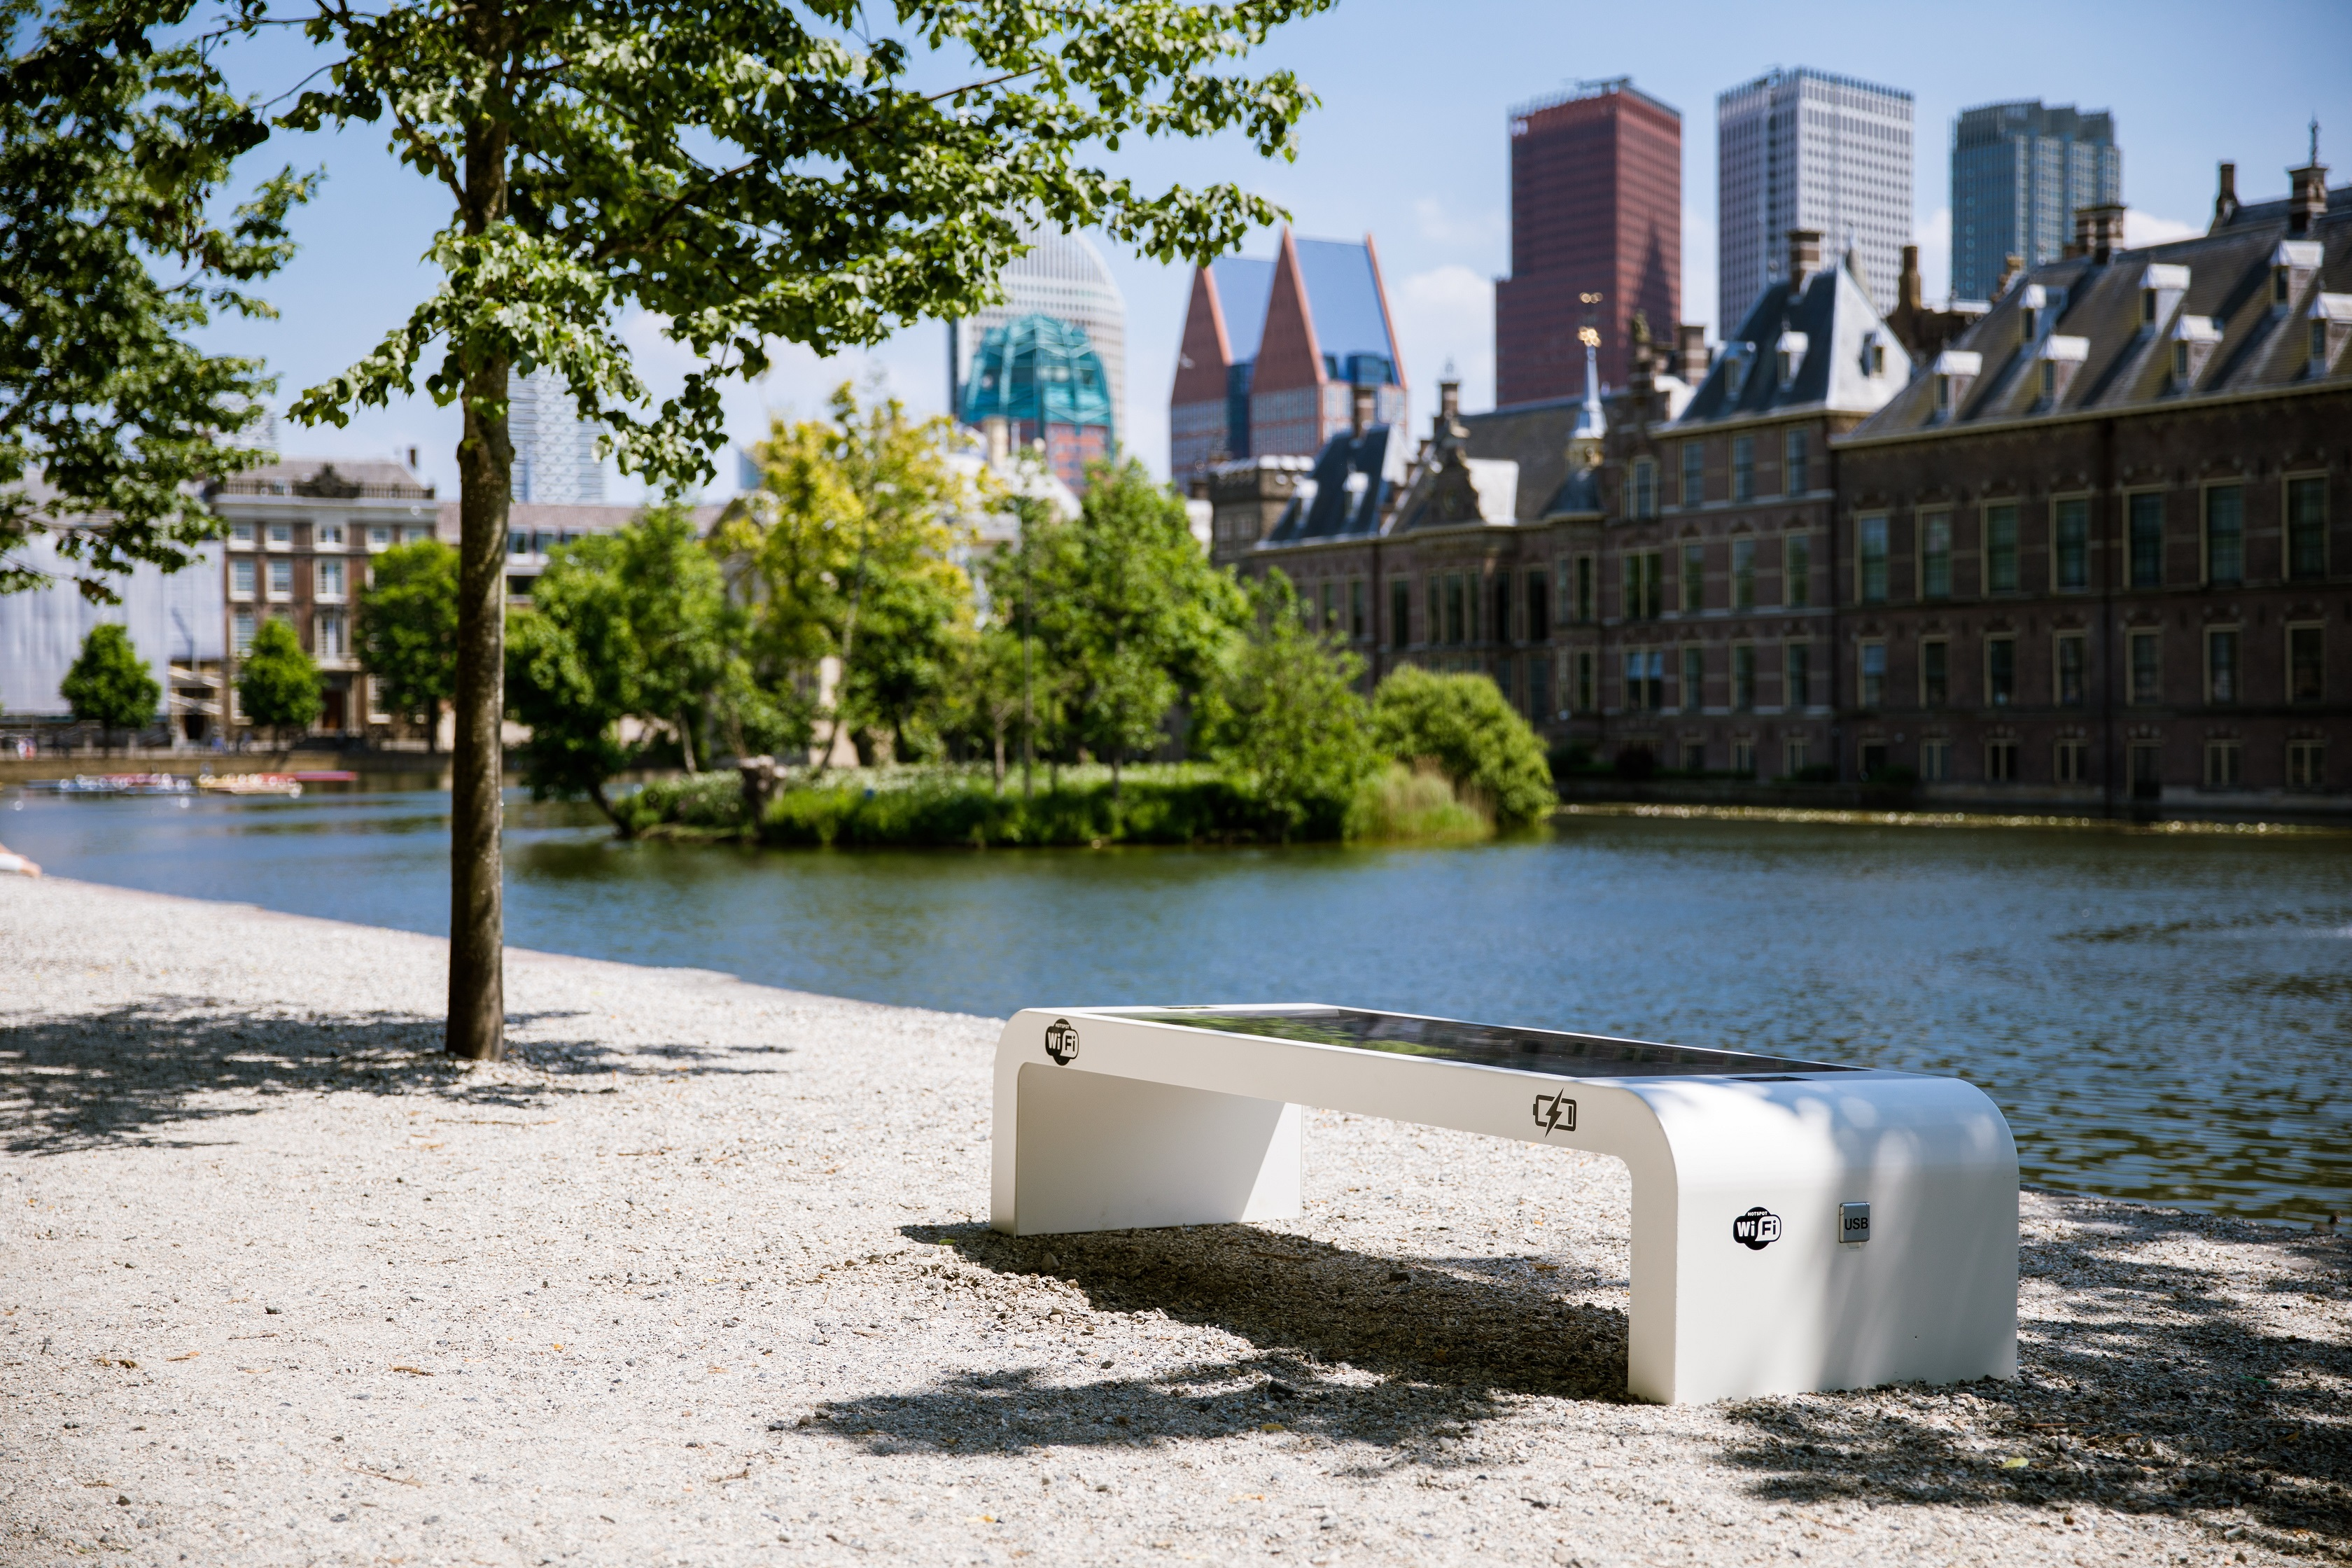 solar-bench-wifi-usb-2